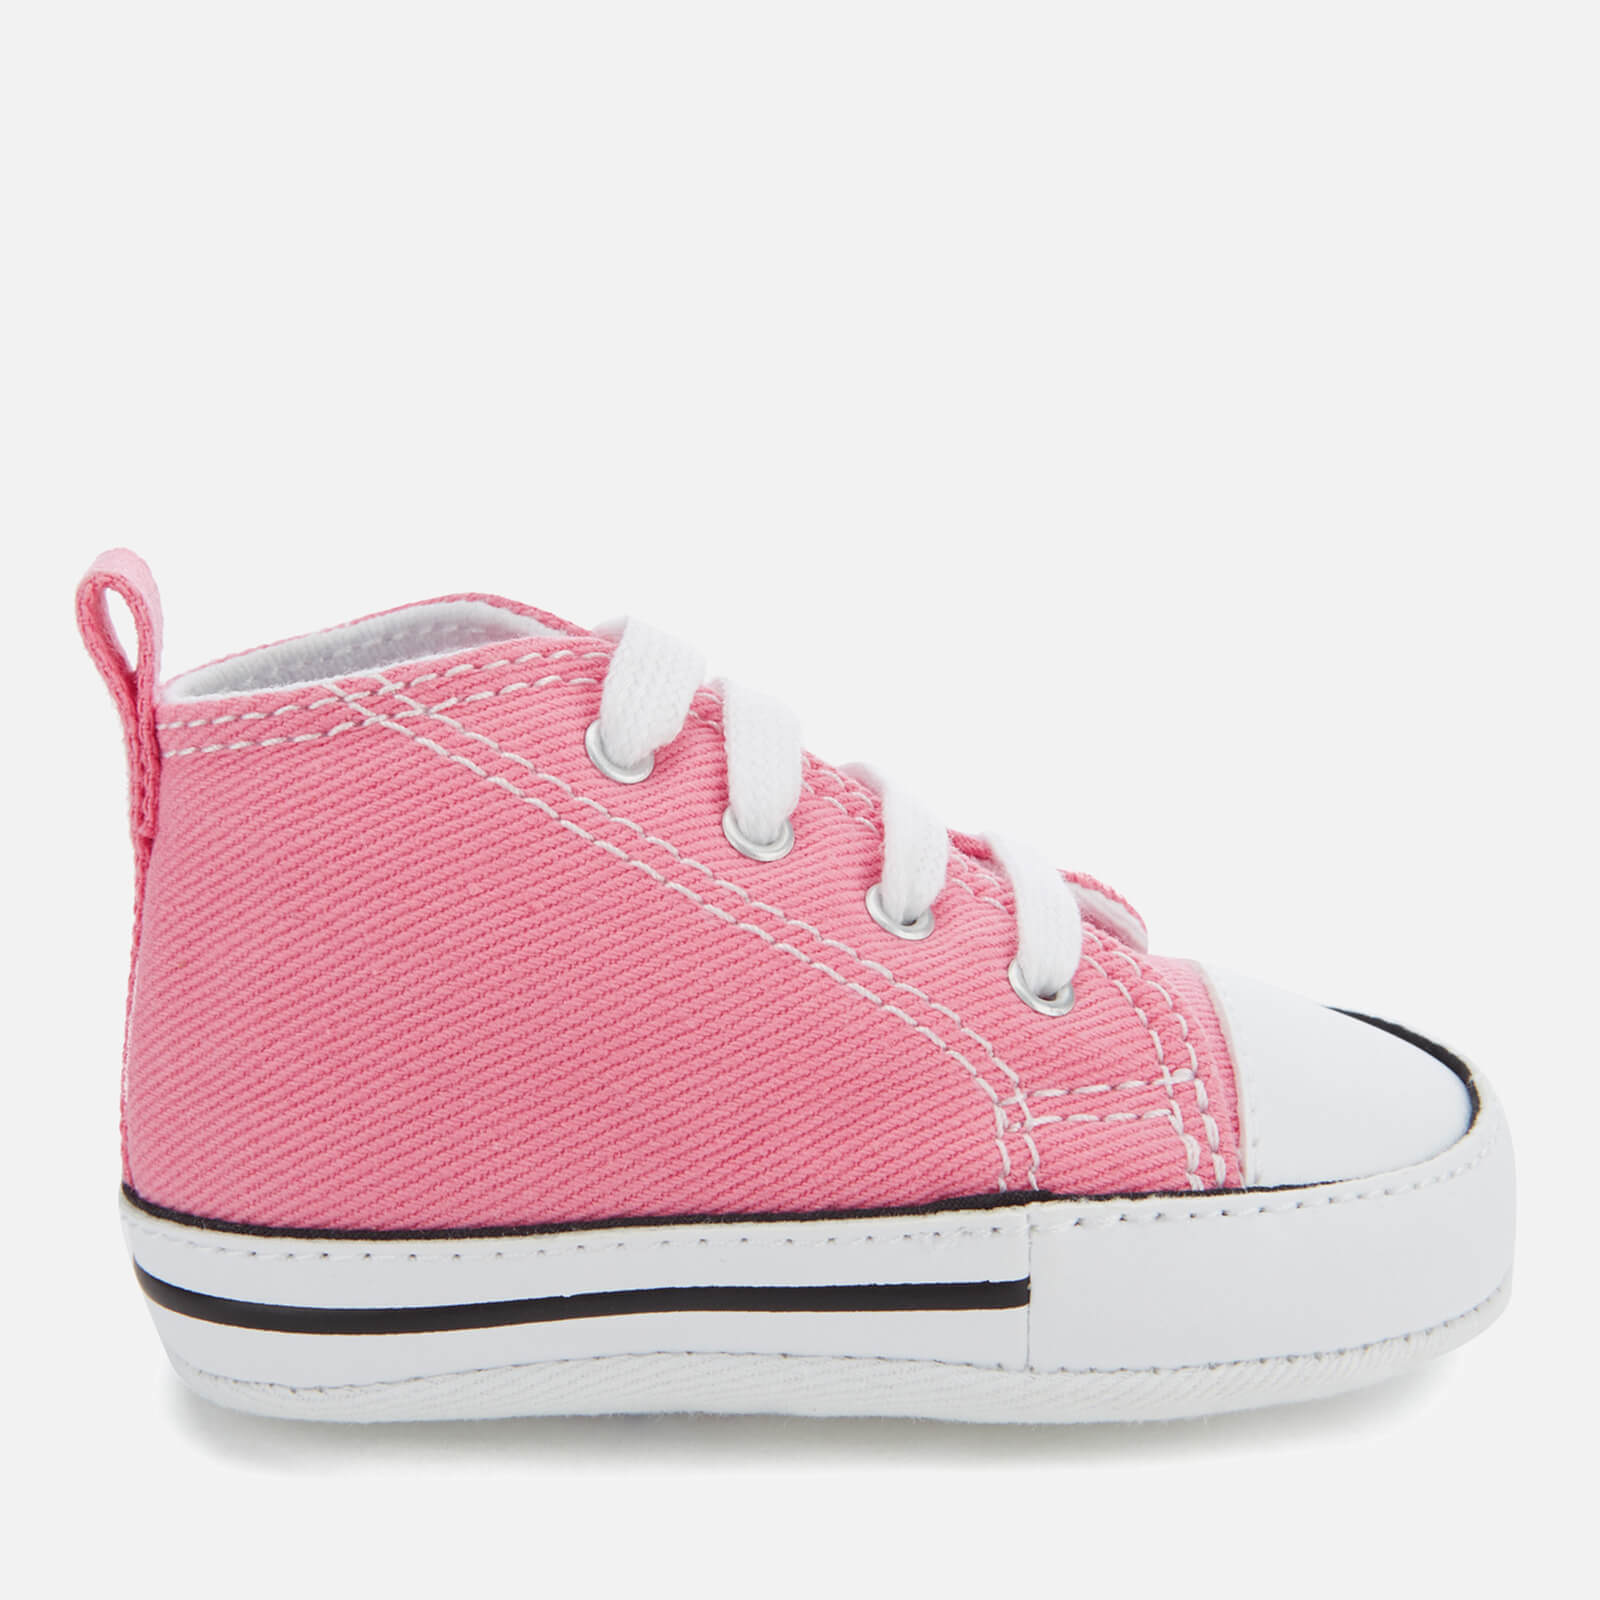 8ed3f11c43a9 Converse Babies Chuck Taylor First Star Hi-Top Trainers - Pink Clothing